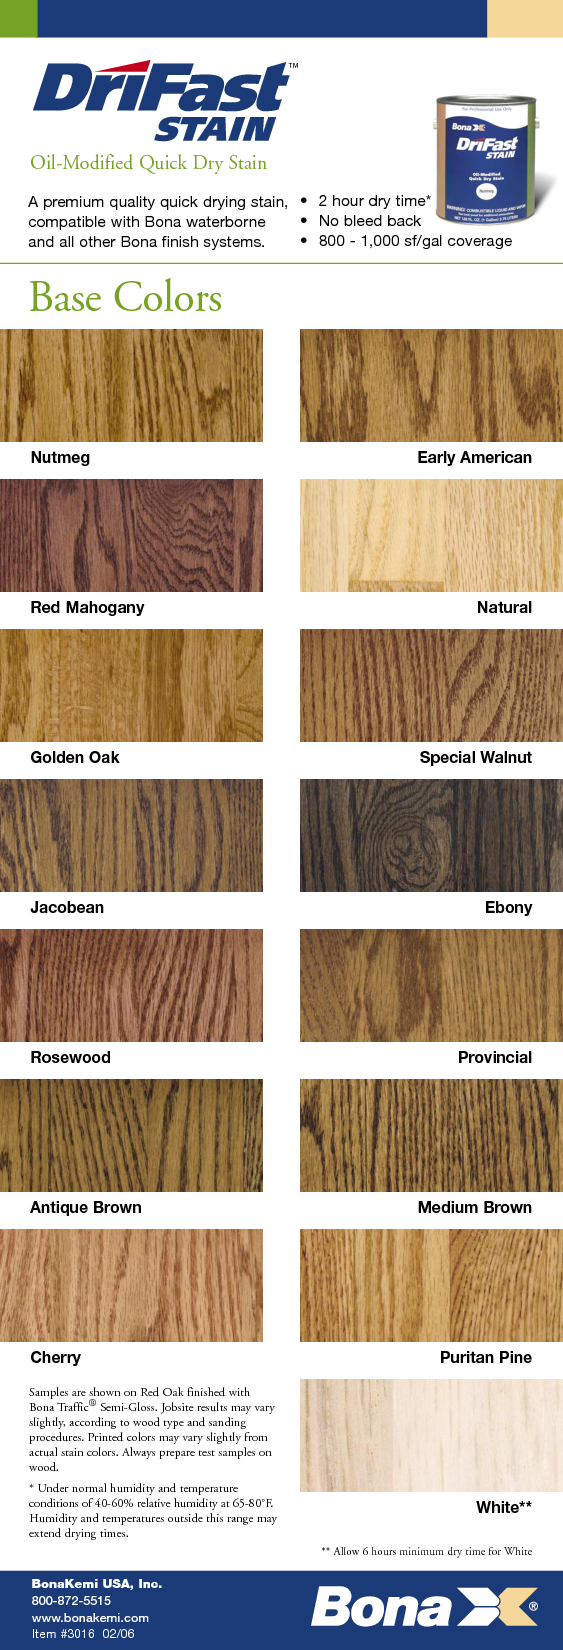 Minwax gel stain colors home depot wood stains color chart car tuning - Bona Hardwood Stain Colors Antique Brown